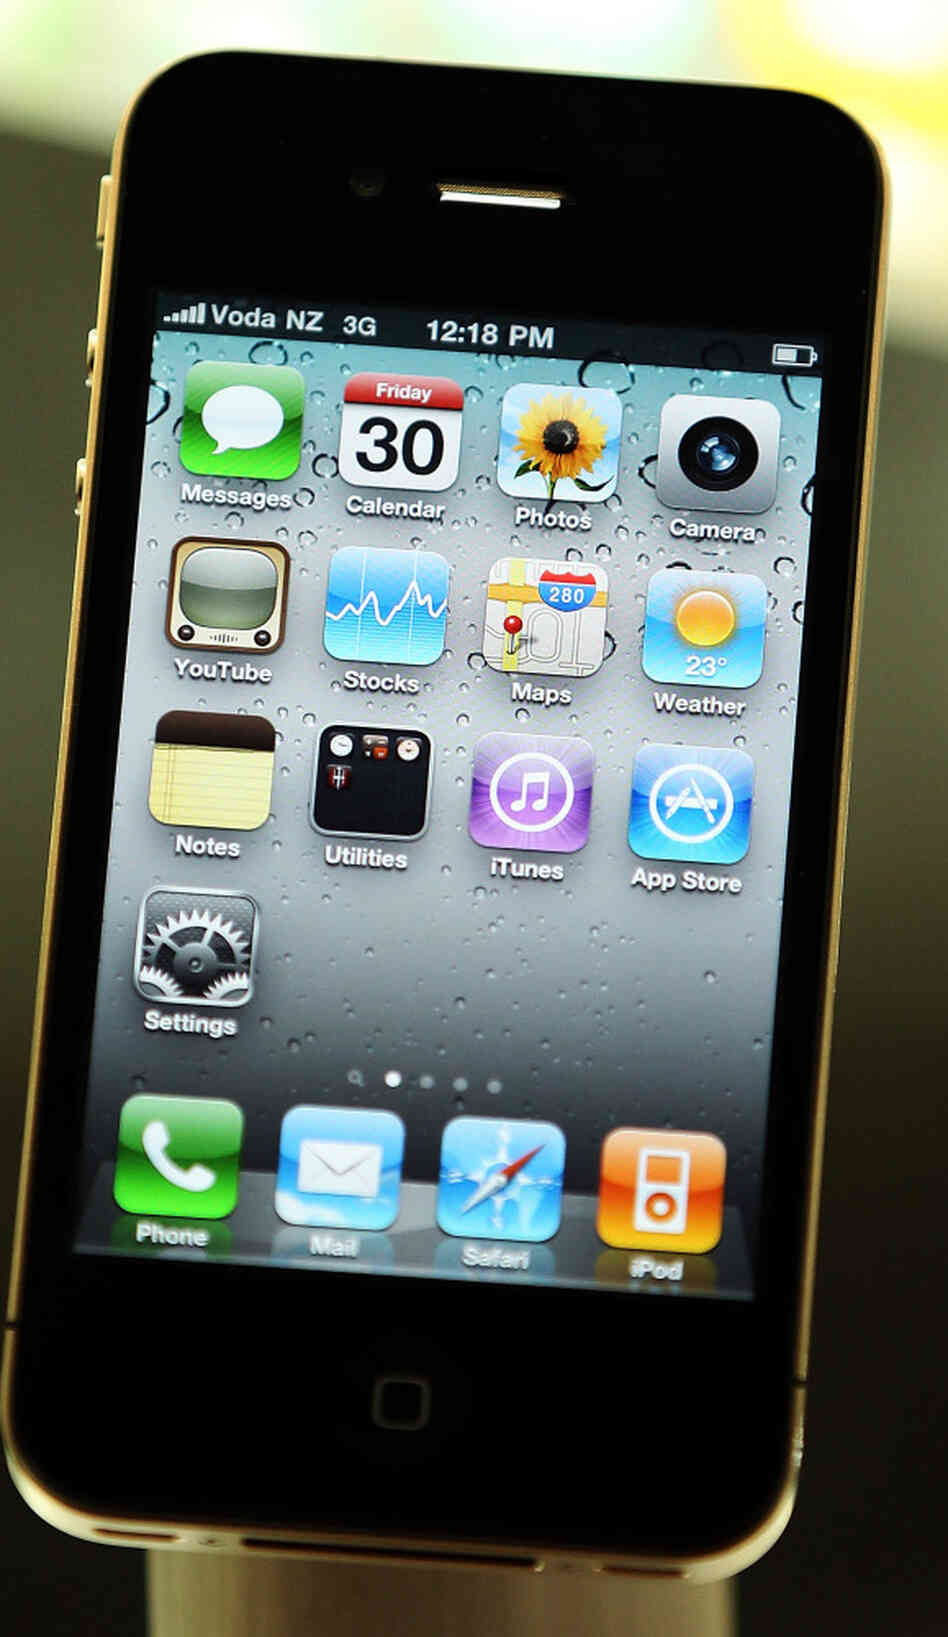 A demonstration model of the iPhone 4, displayed at the Vodafone Newmarket store on July 30, 2010 in Auckland, New Zealand.